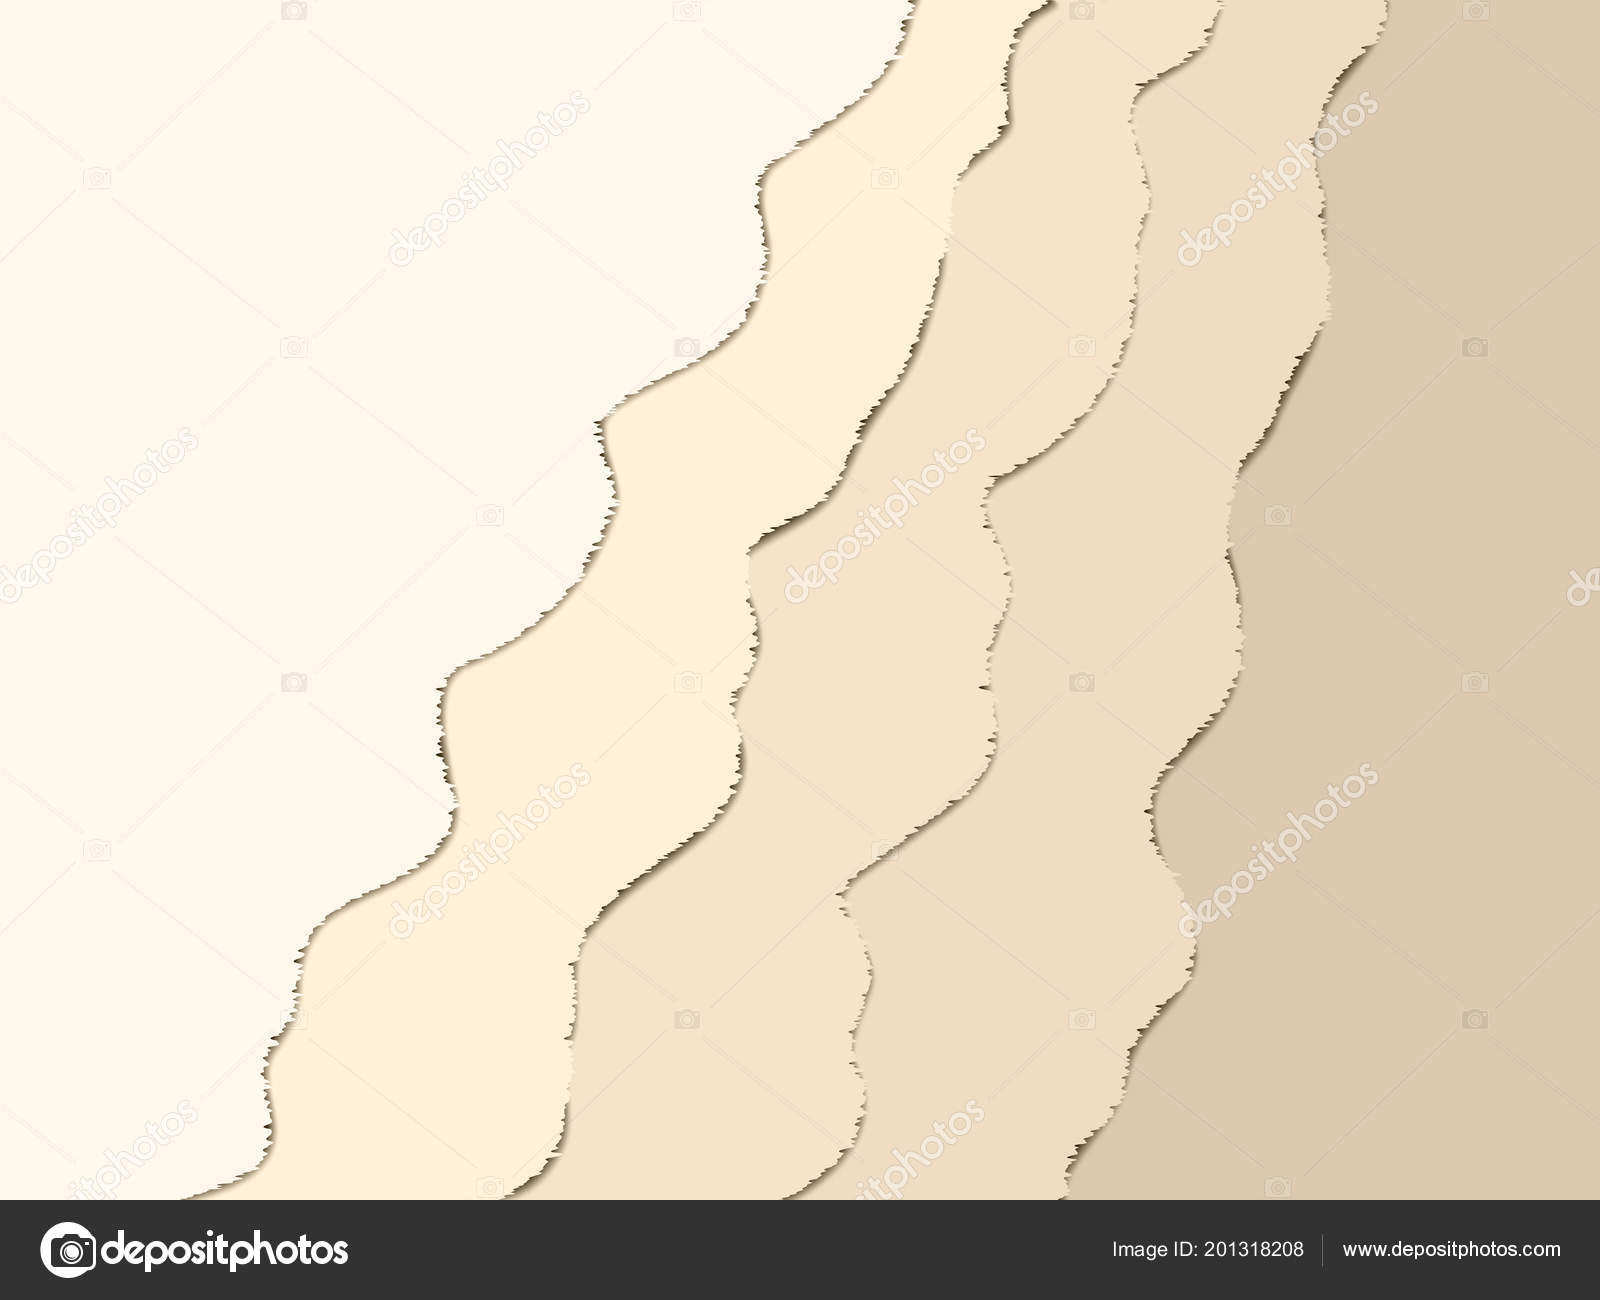 abstract paper cut art background design website template topography